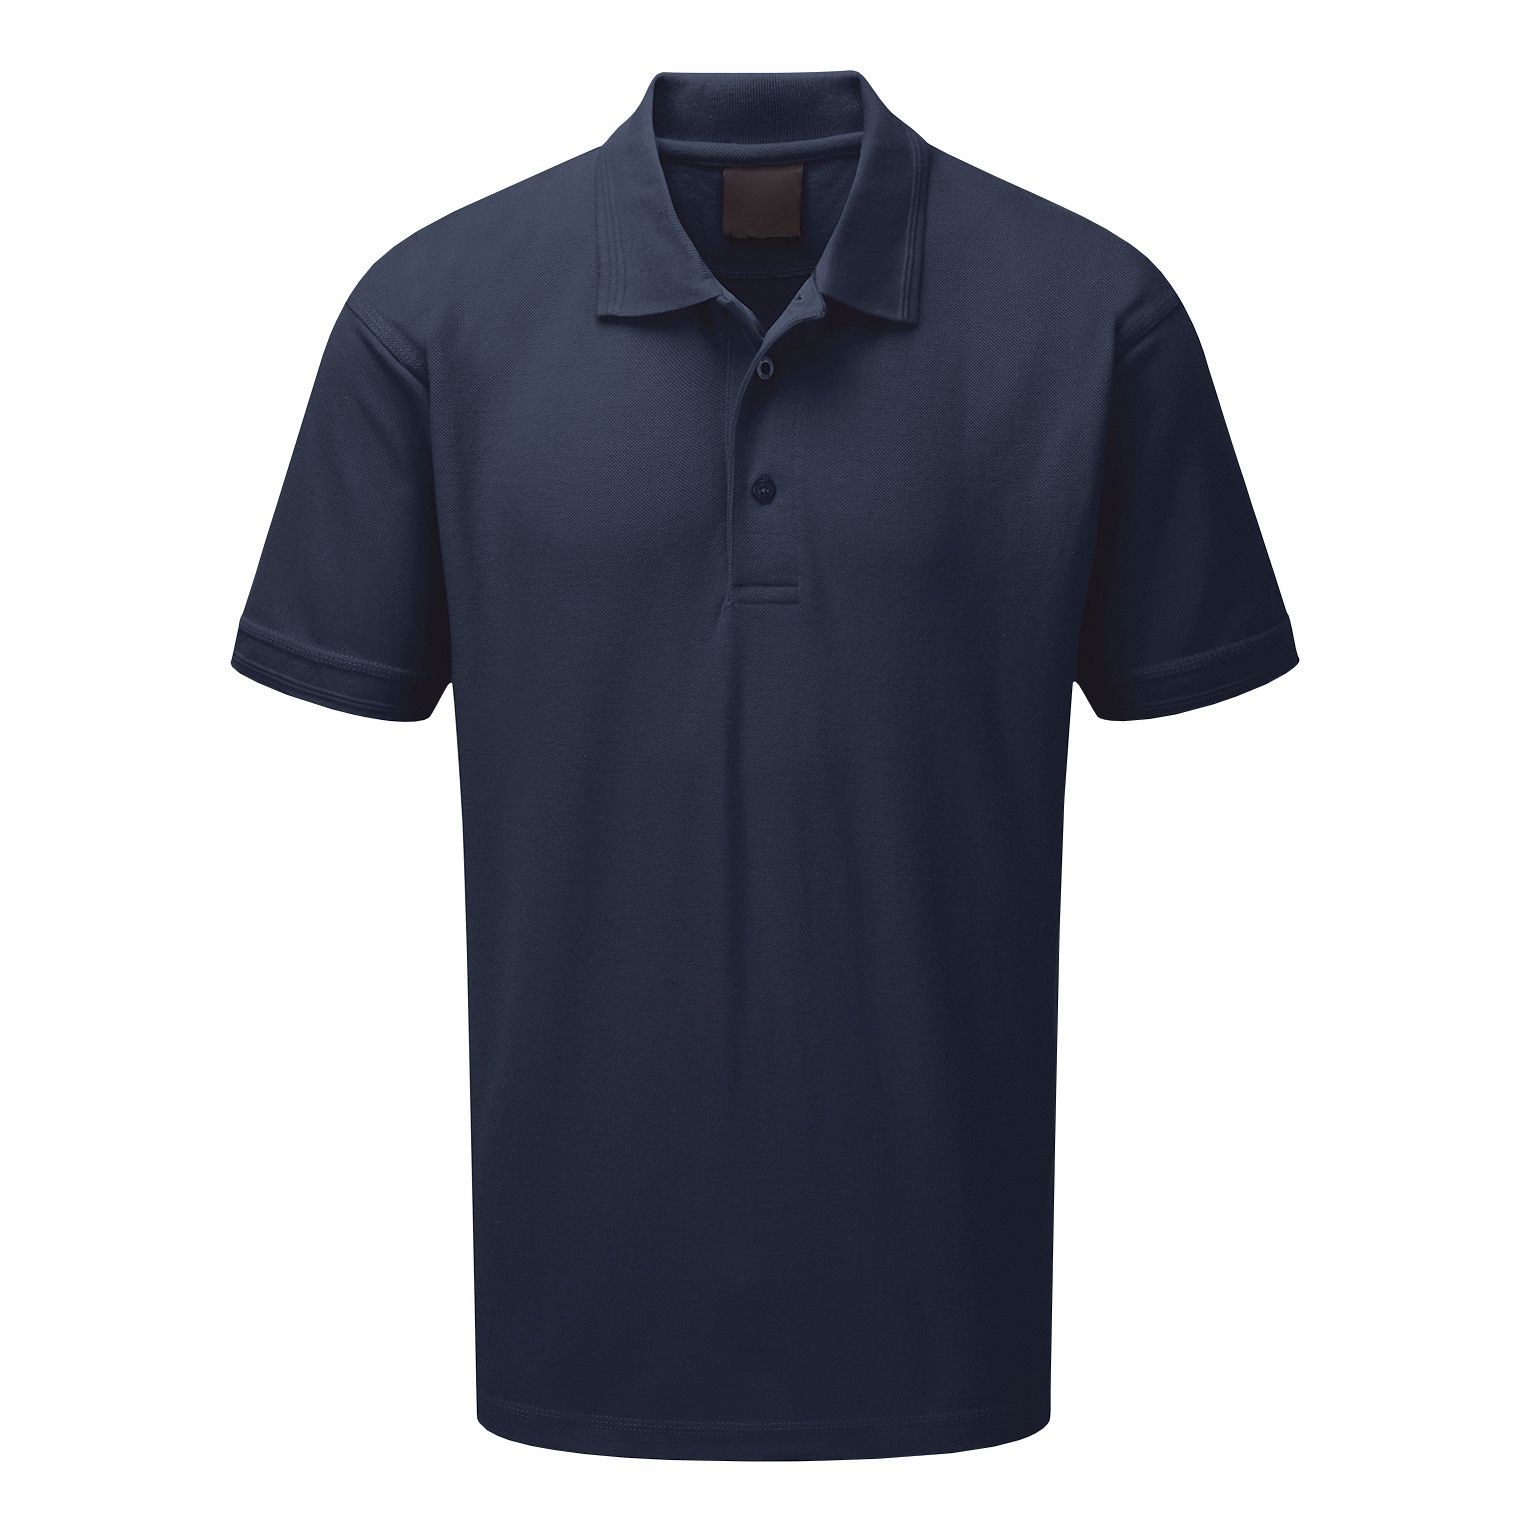 Supertouch Polo Shirt Classic Polycotton XXXXLarge Navy Ref 56CN7 *Approx 3 Day Leadtime*